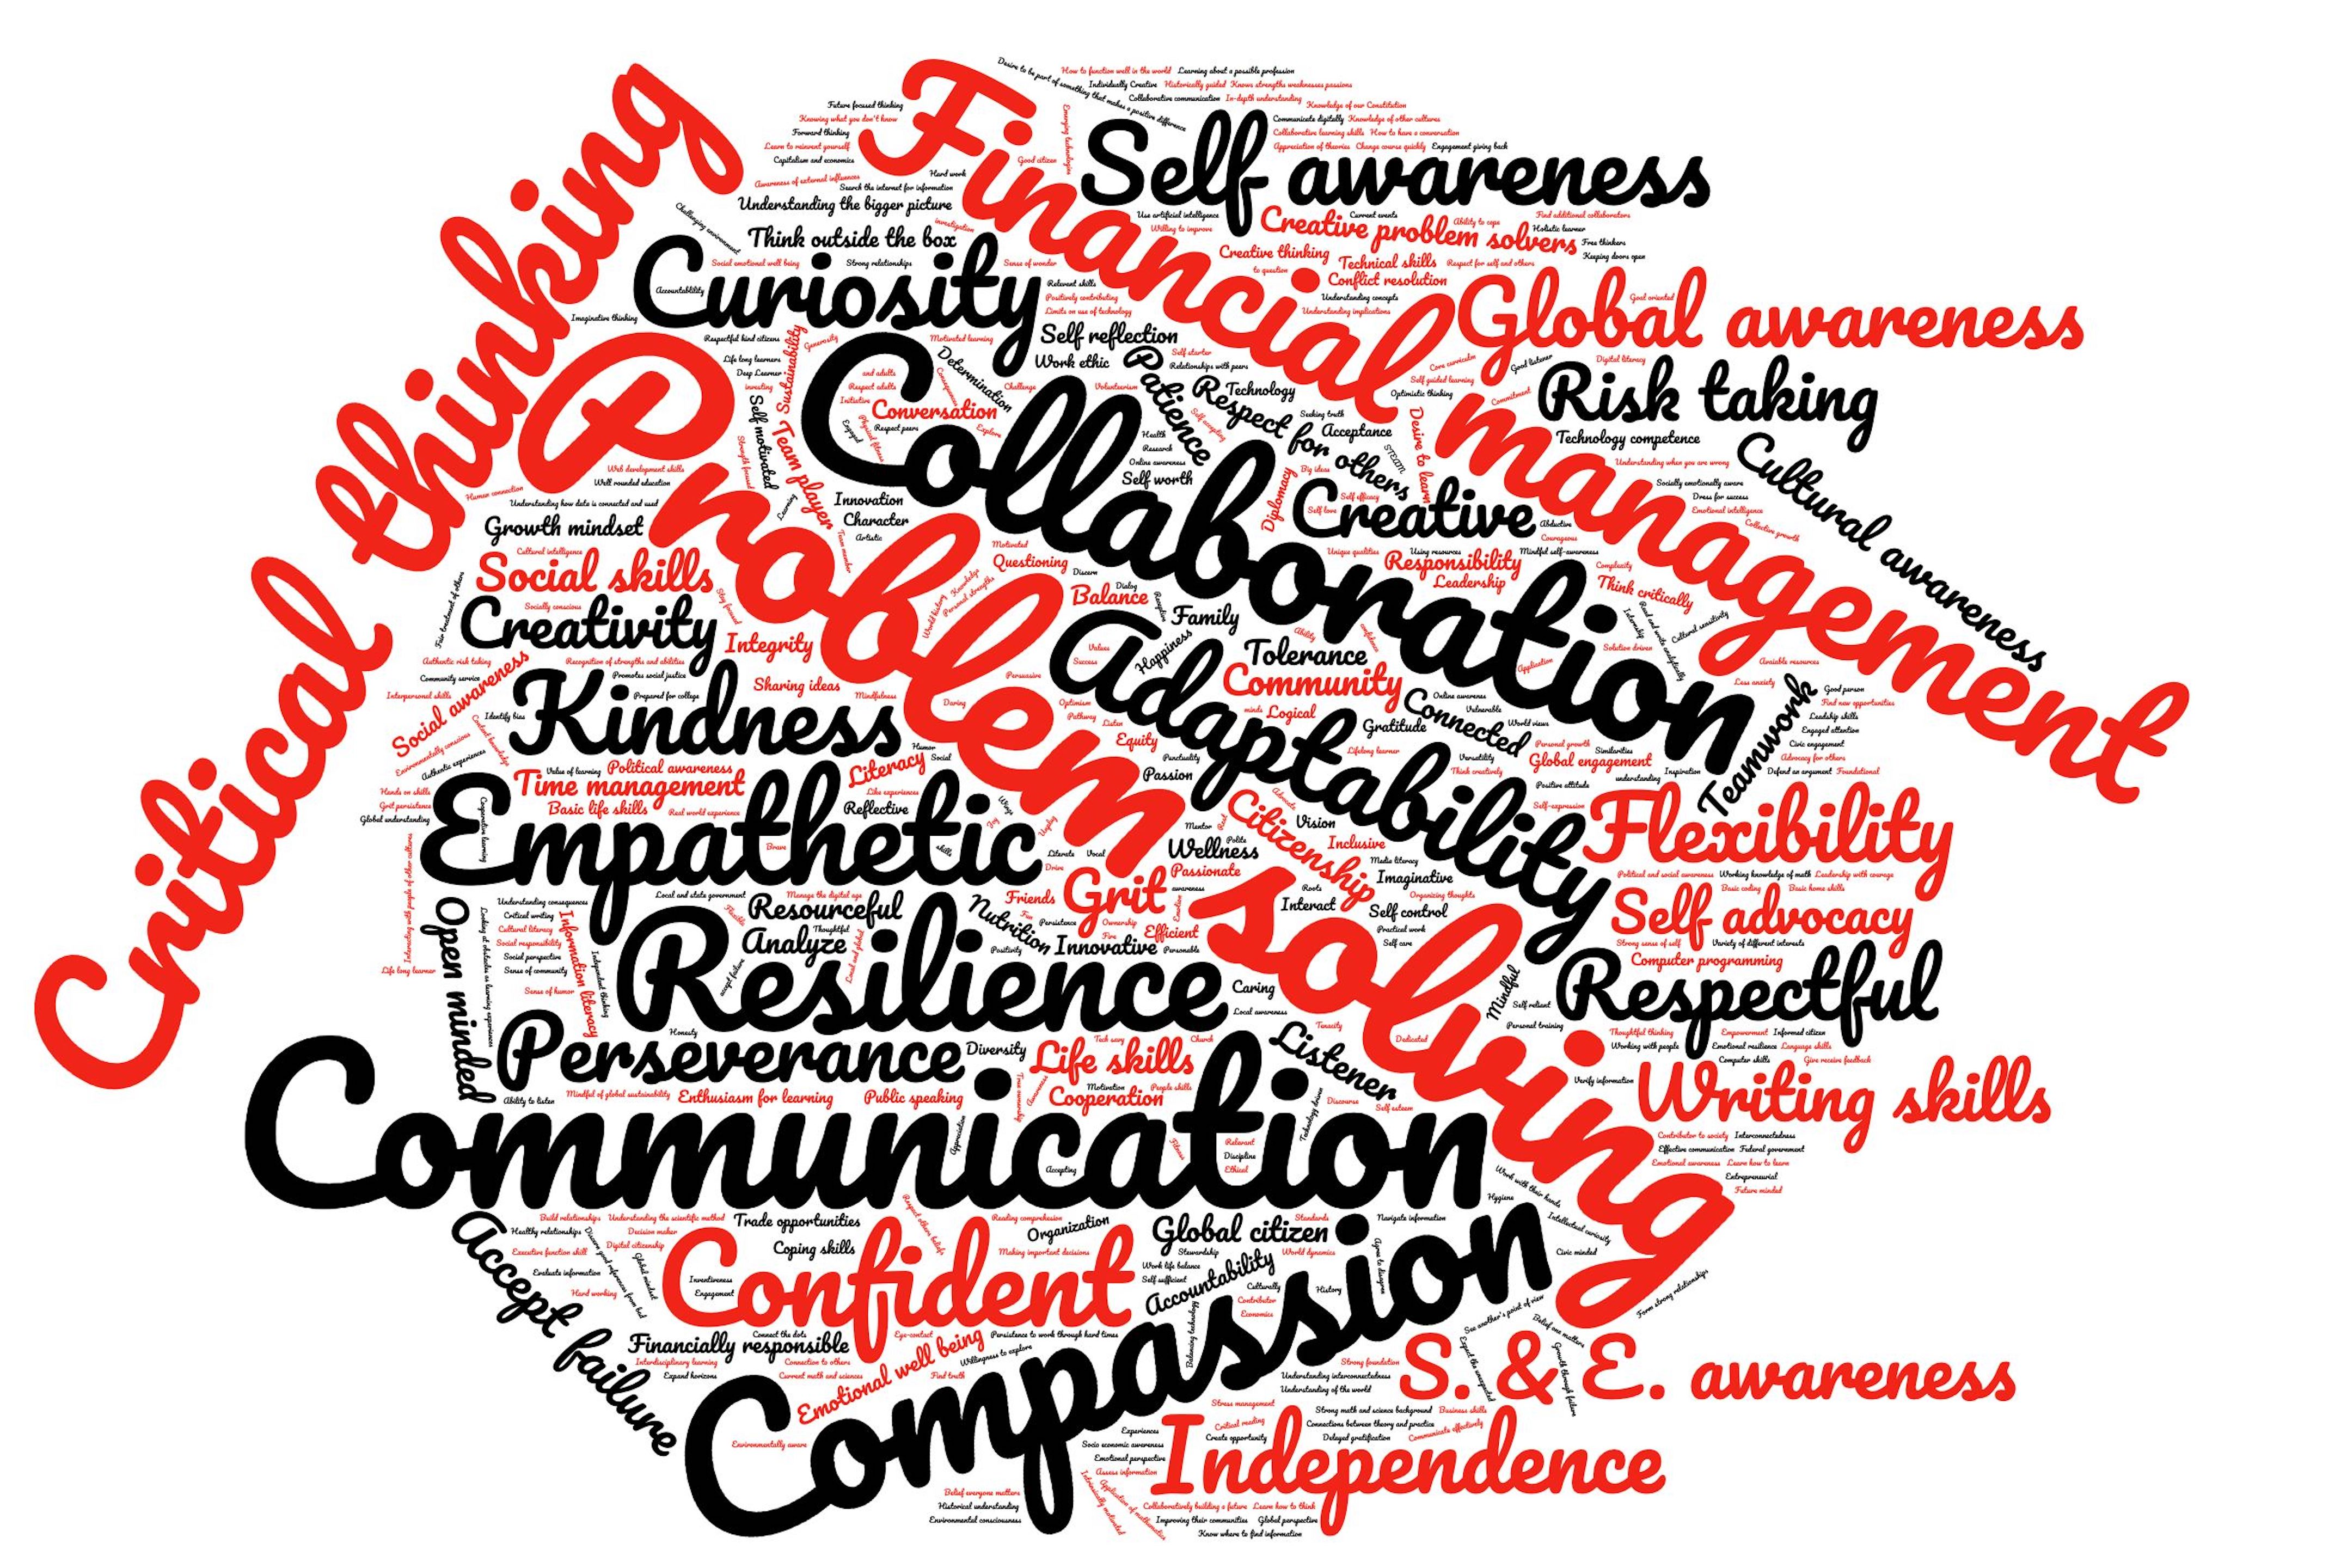 Word Cloud of combined faculty, parent and community responses